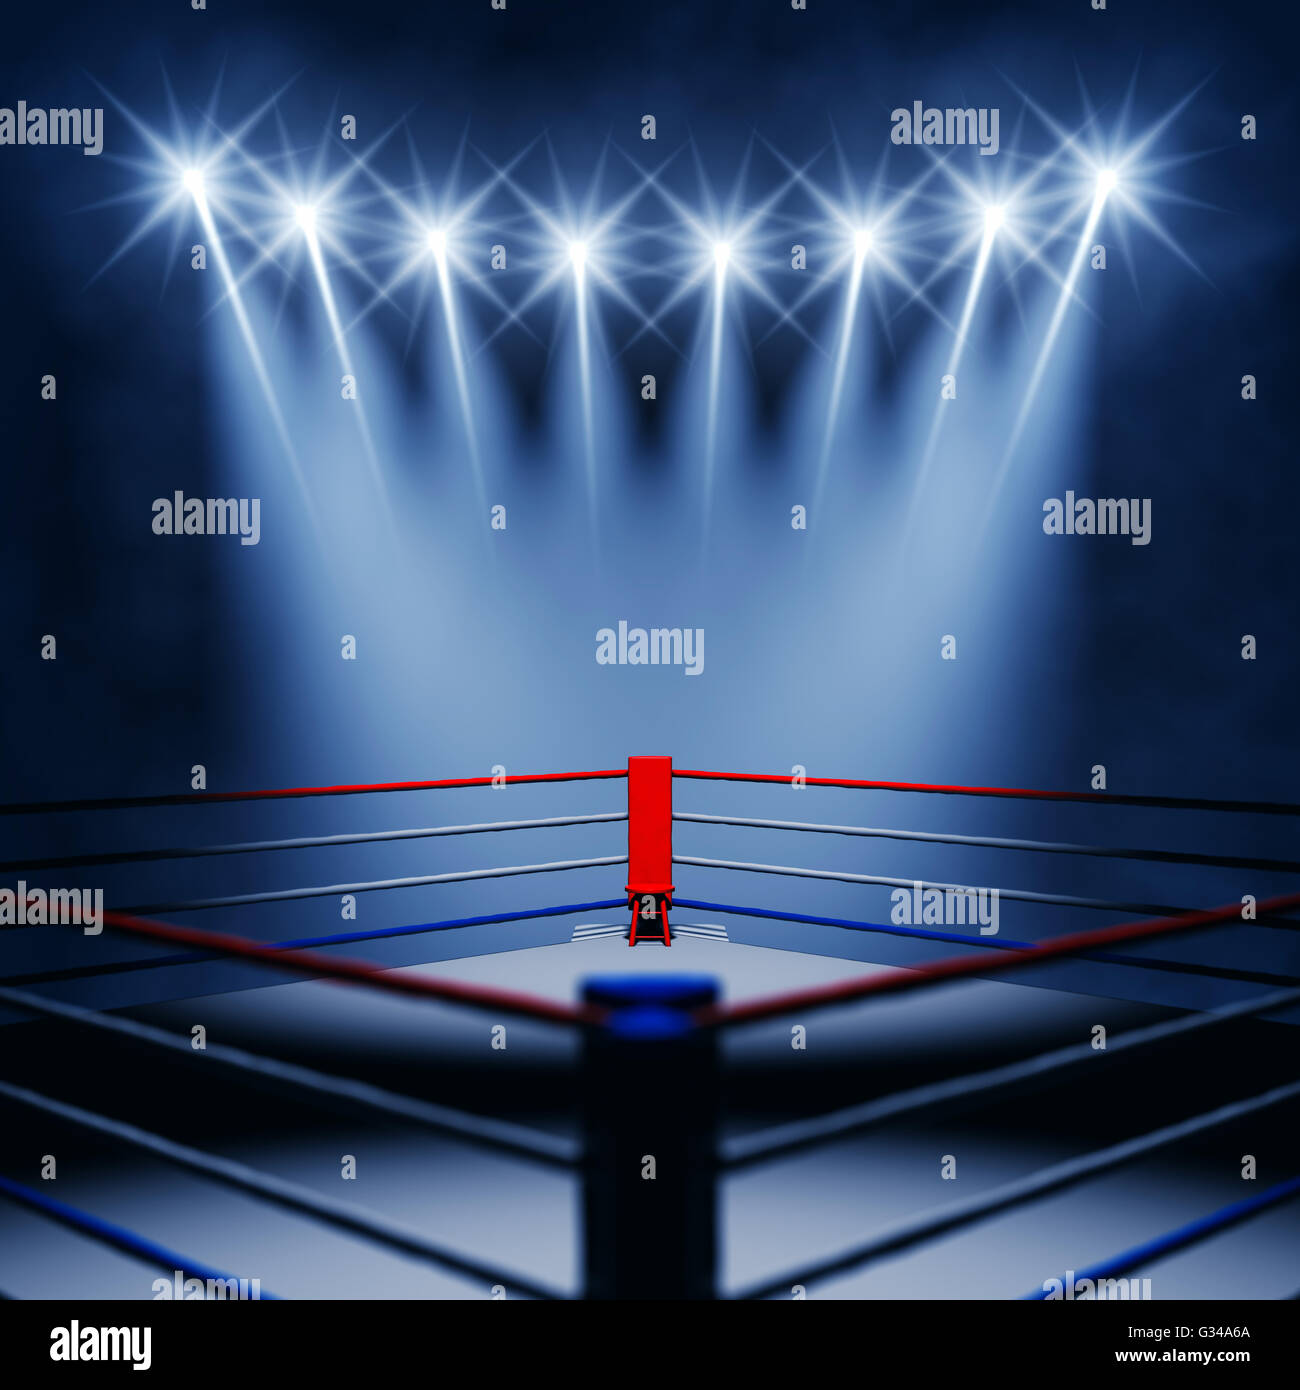 Boxing ring images